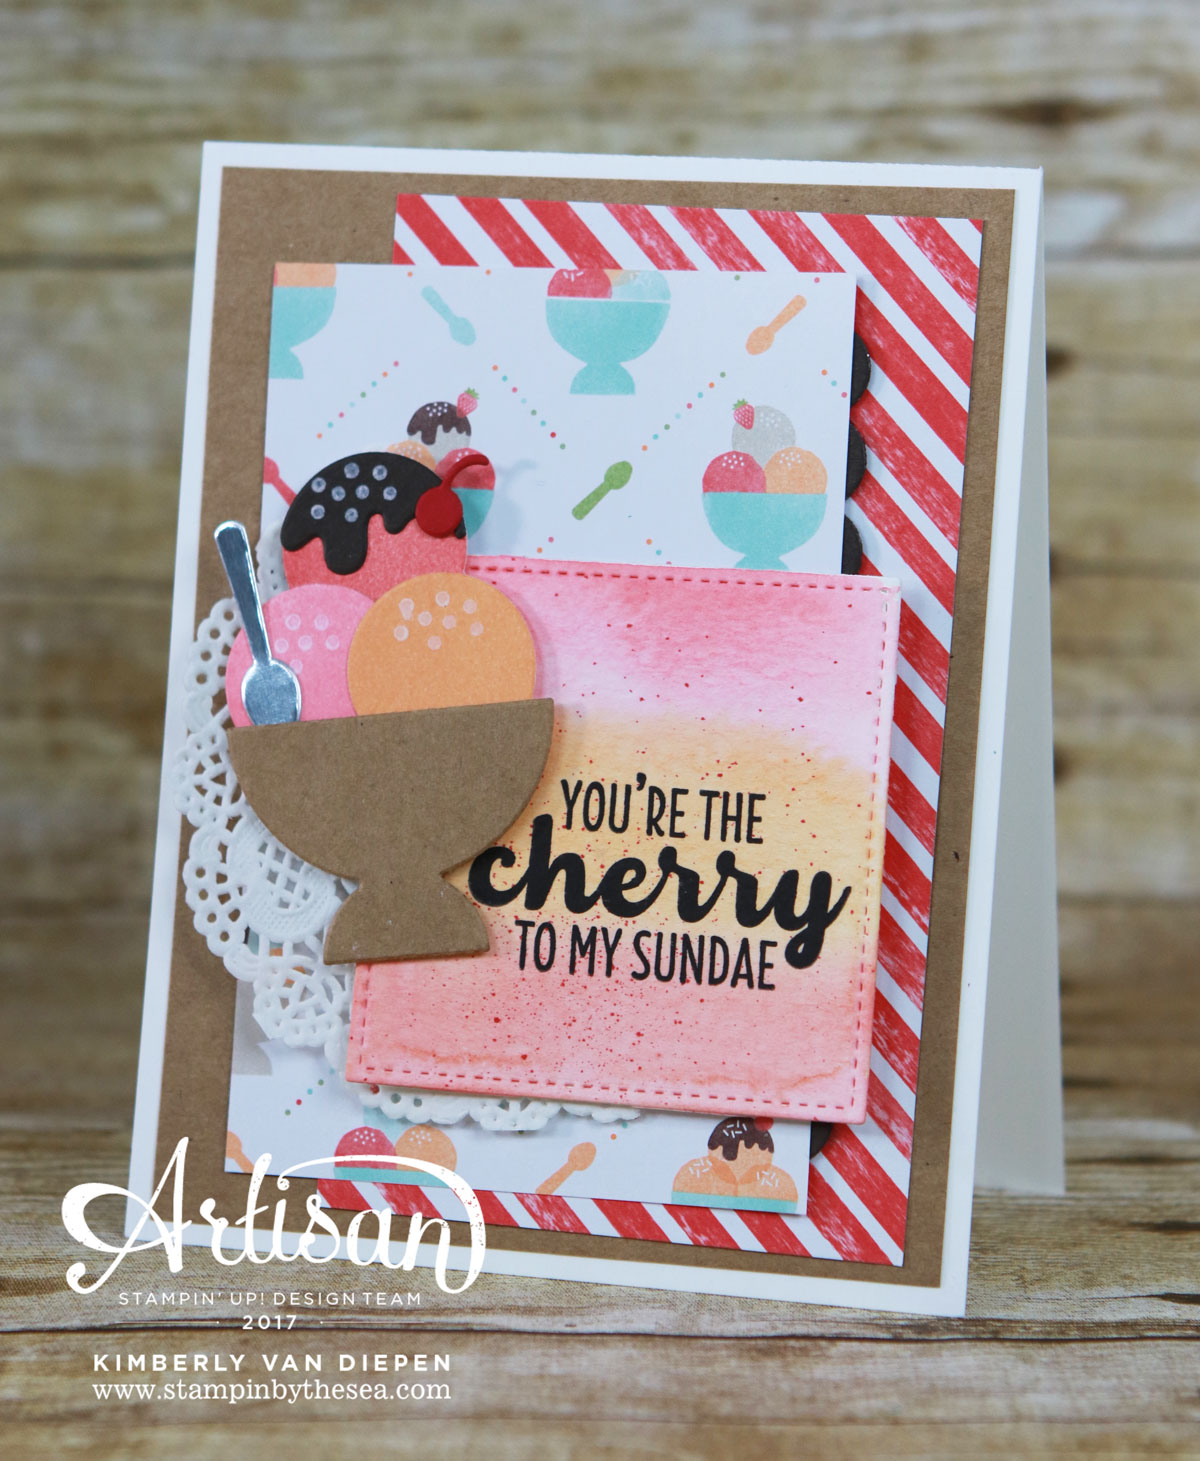 Let's Splurge, Cool Treats, Stampin' Up!